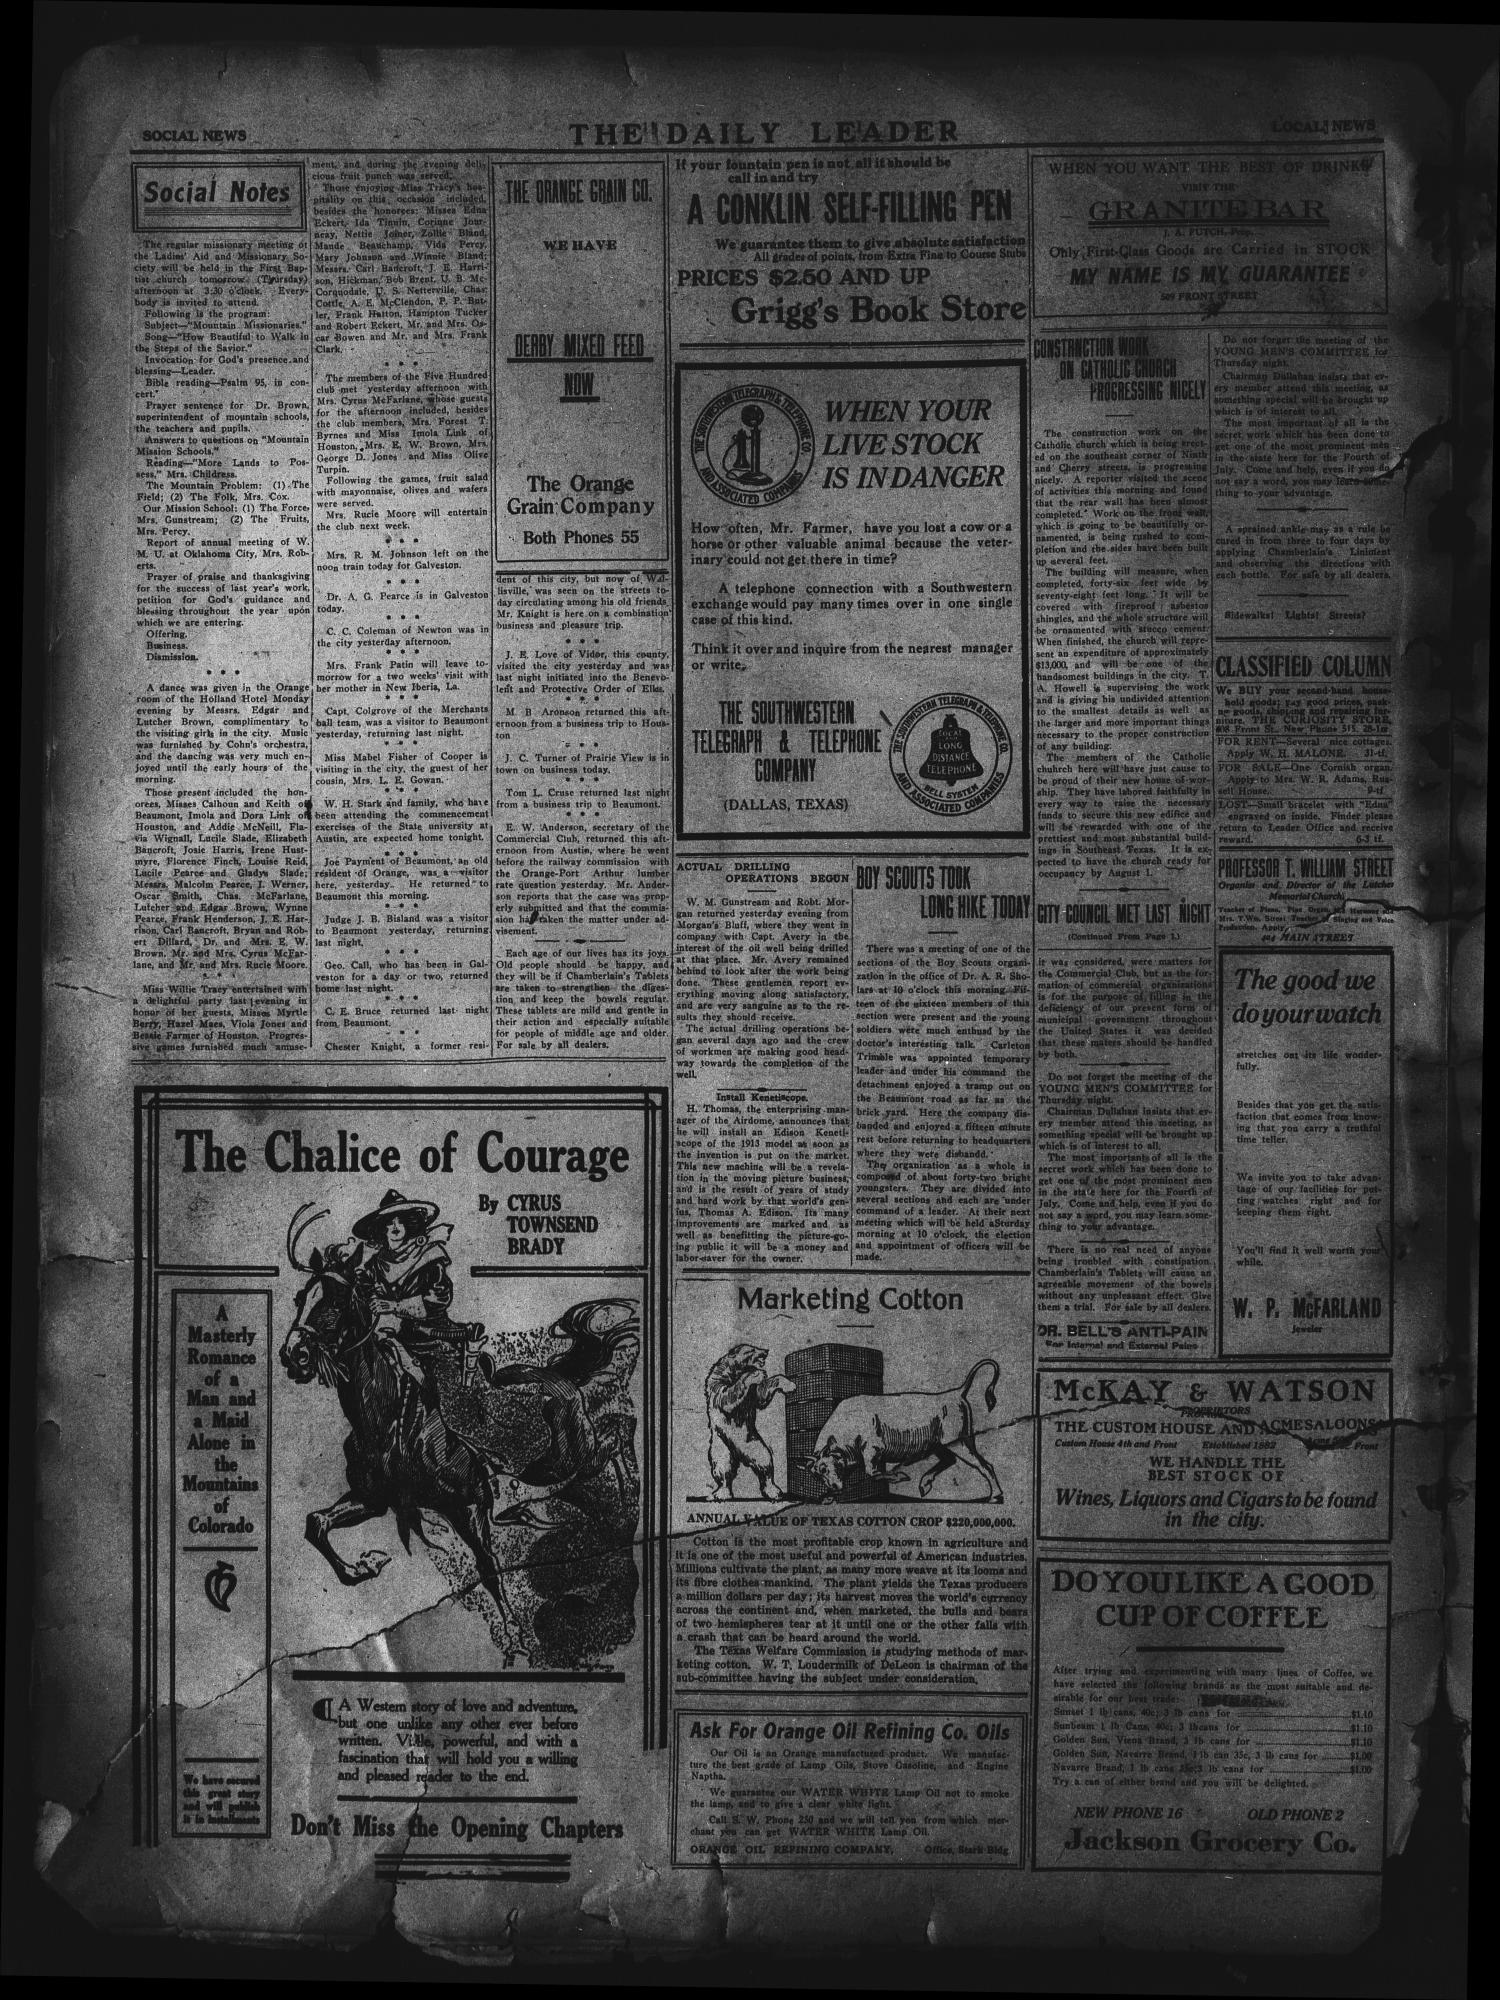 The Daily Leader. (Orange, Tex.), Vol. 5, No. 80, Ed. 1 Wednesday, June 12, 1912                                                                                                      [Sequence #]: 4 of 4